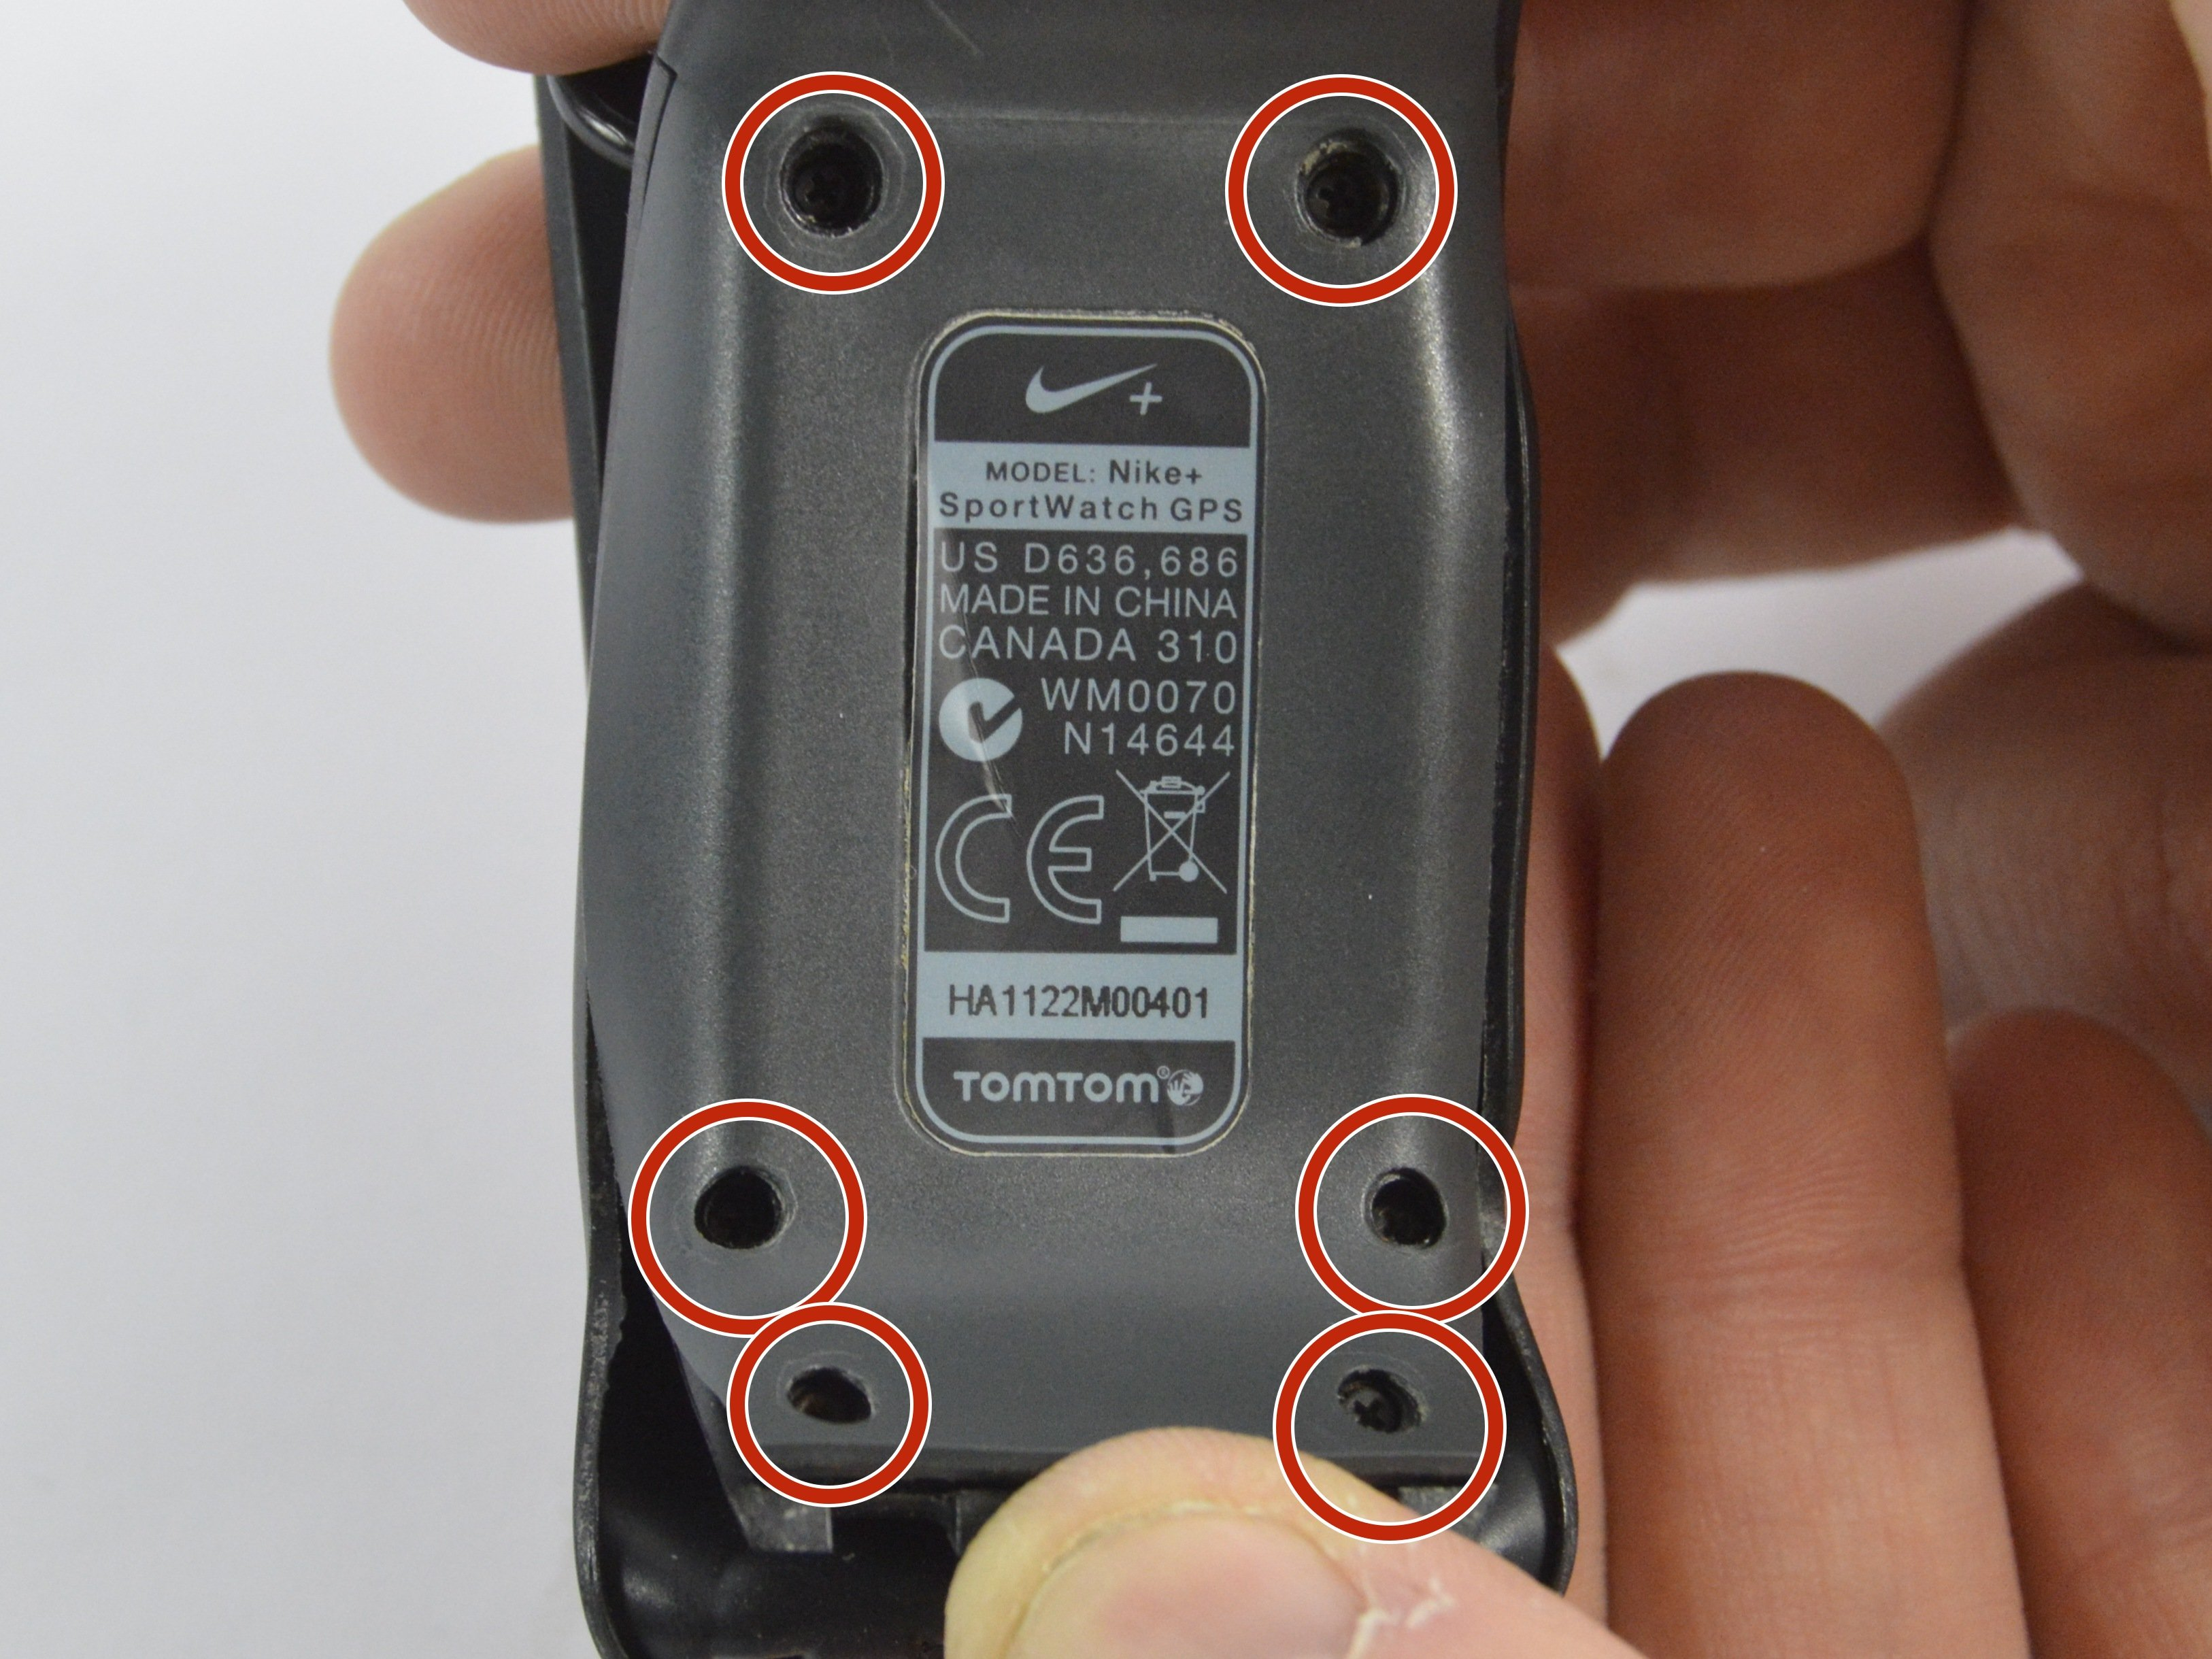 d826ade04 Nike SportWatch GPS Battery Replacement - iFixit Repair Guide